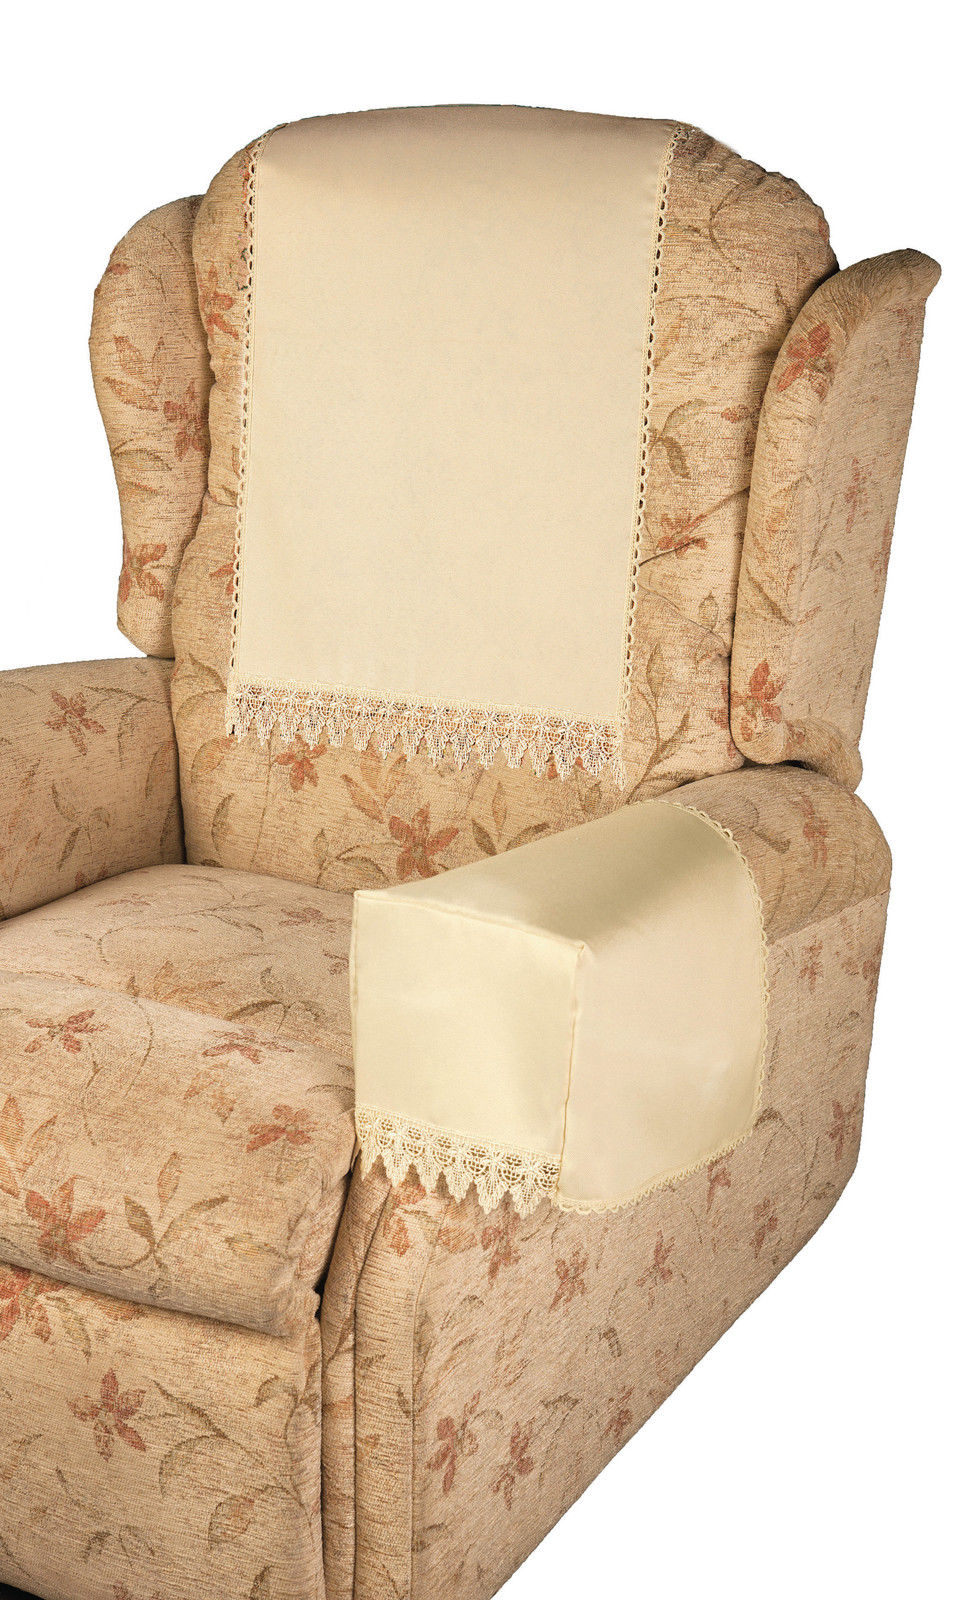 Comet Cream Chair Back Covers By Easycare Tablecloths